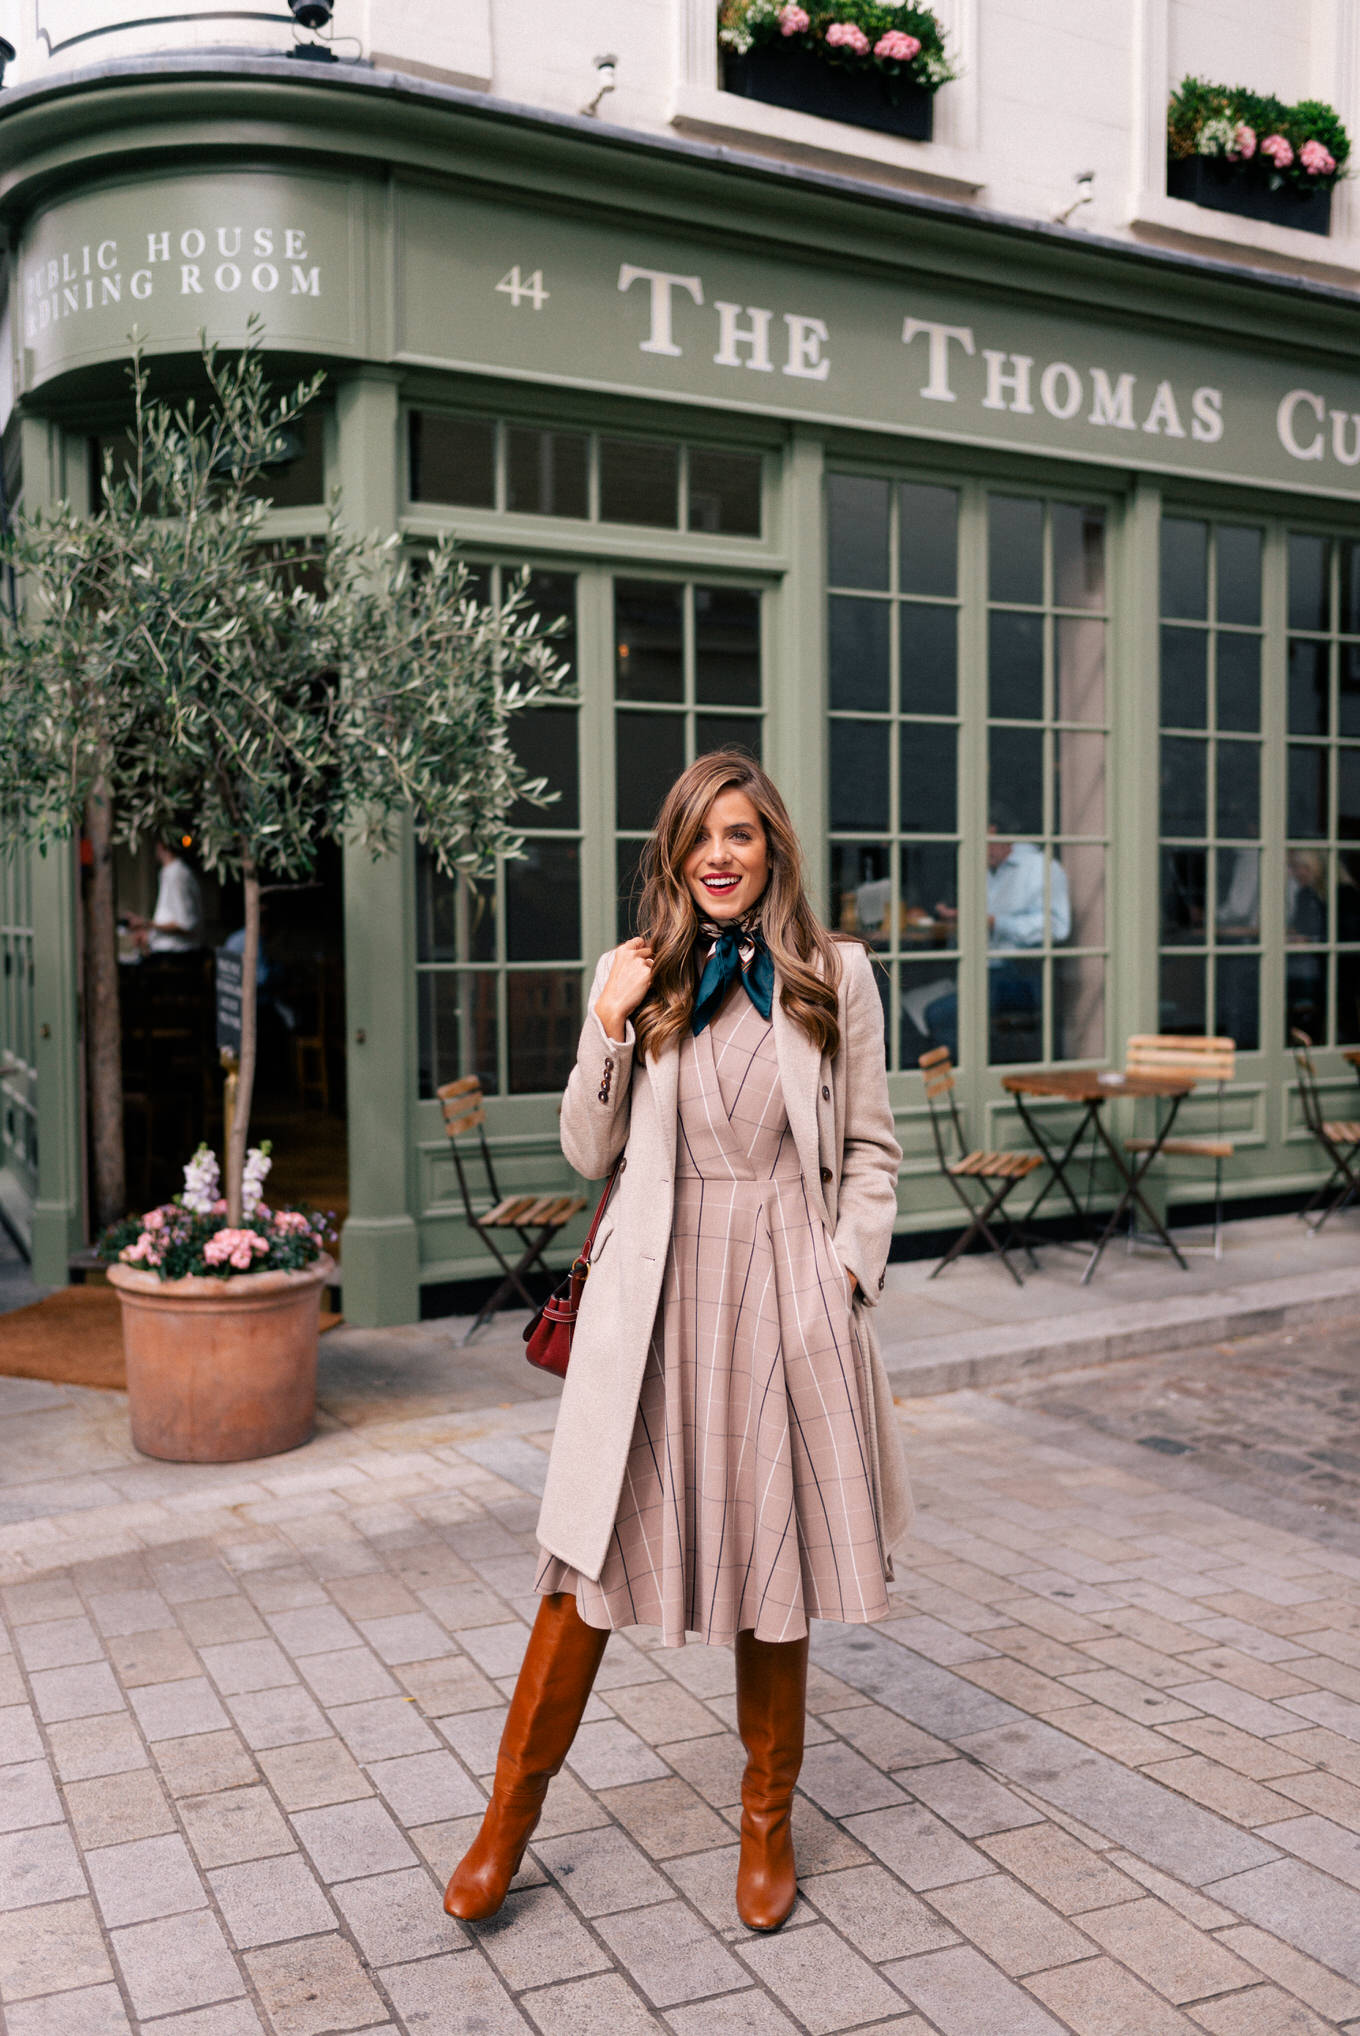 3 Items To Help You Style Dresses For The Fall Season - Gal